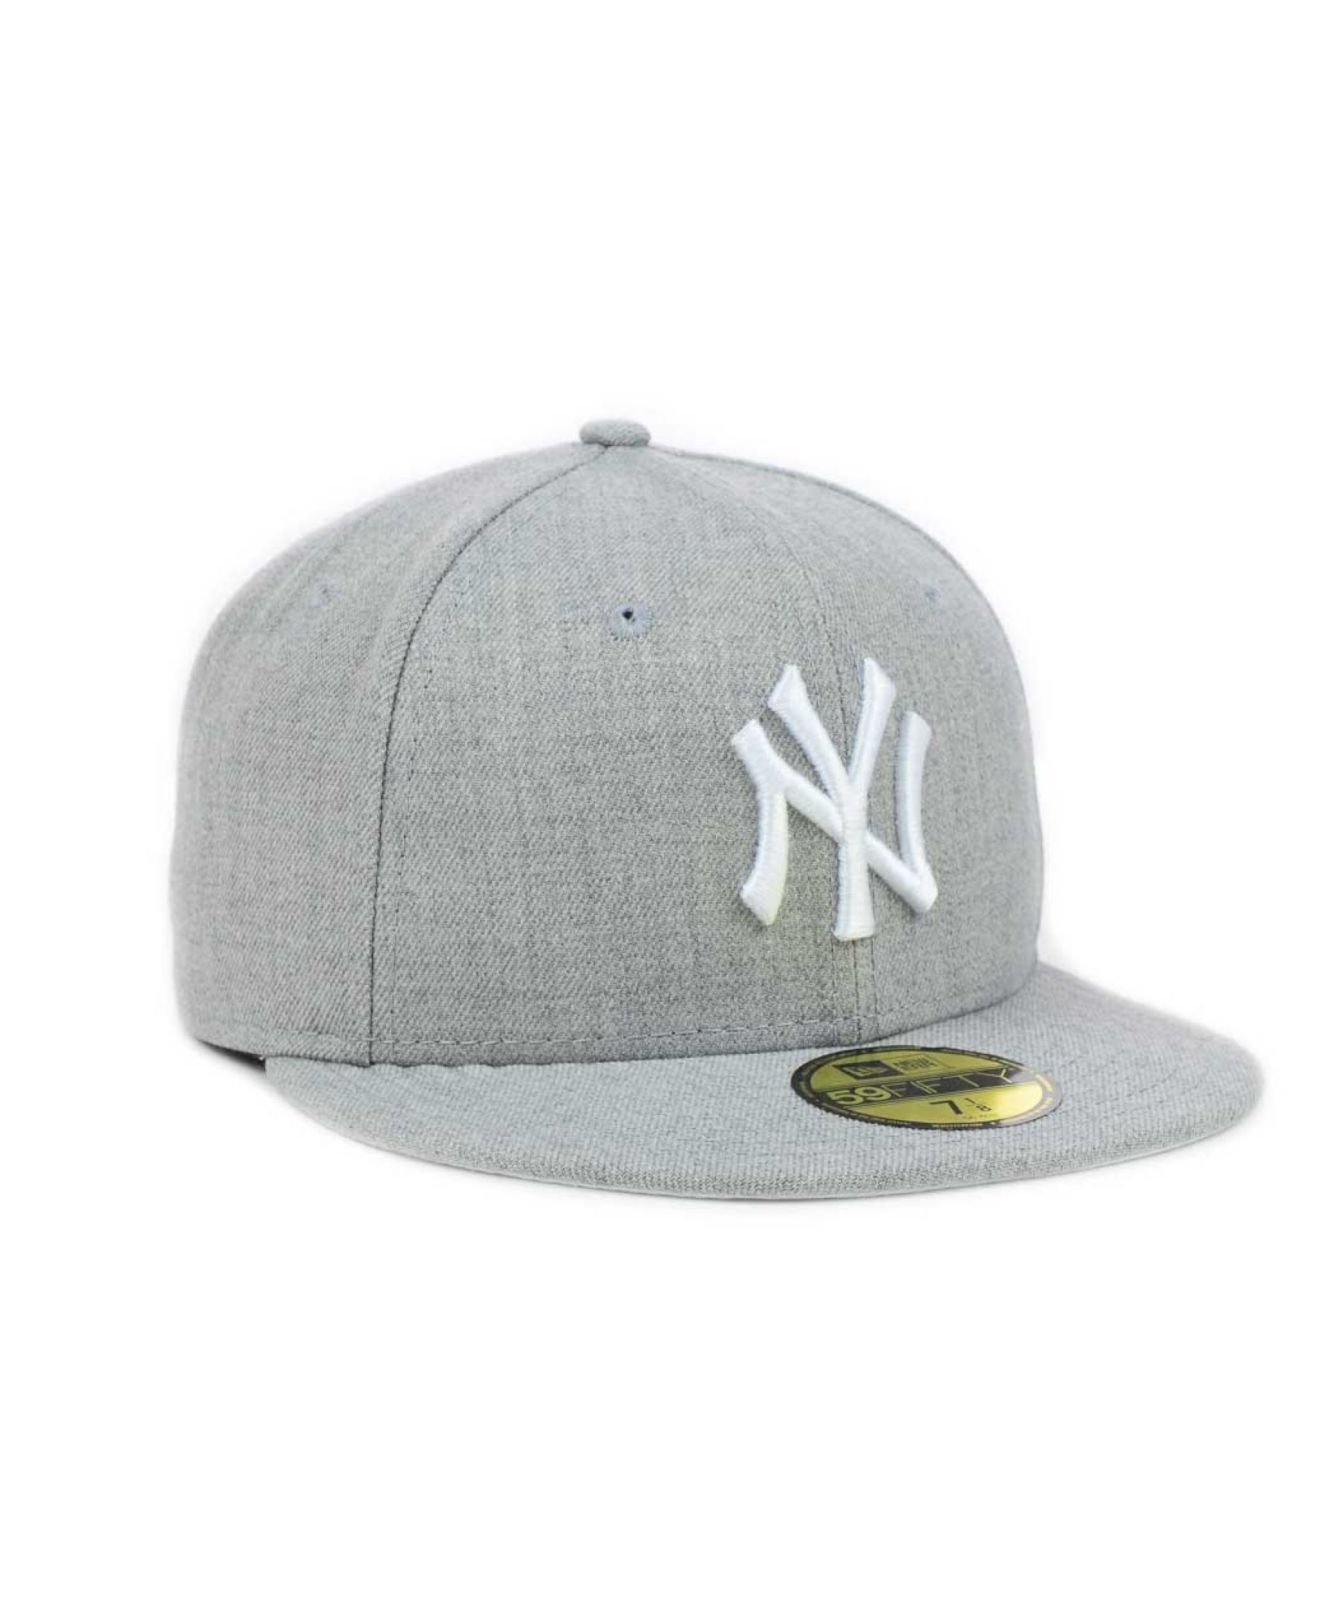 separation shoes 9ed22 4b42a KTZ New York Yankees Mlb Heather Basic 59Fifty Cap in Gray for Men ...